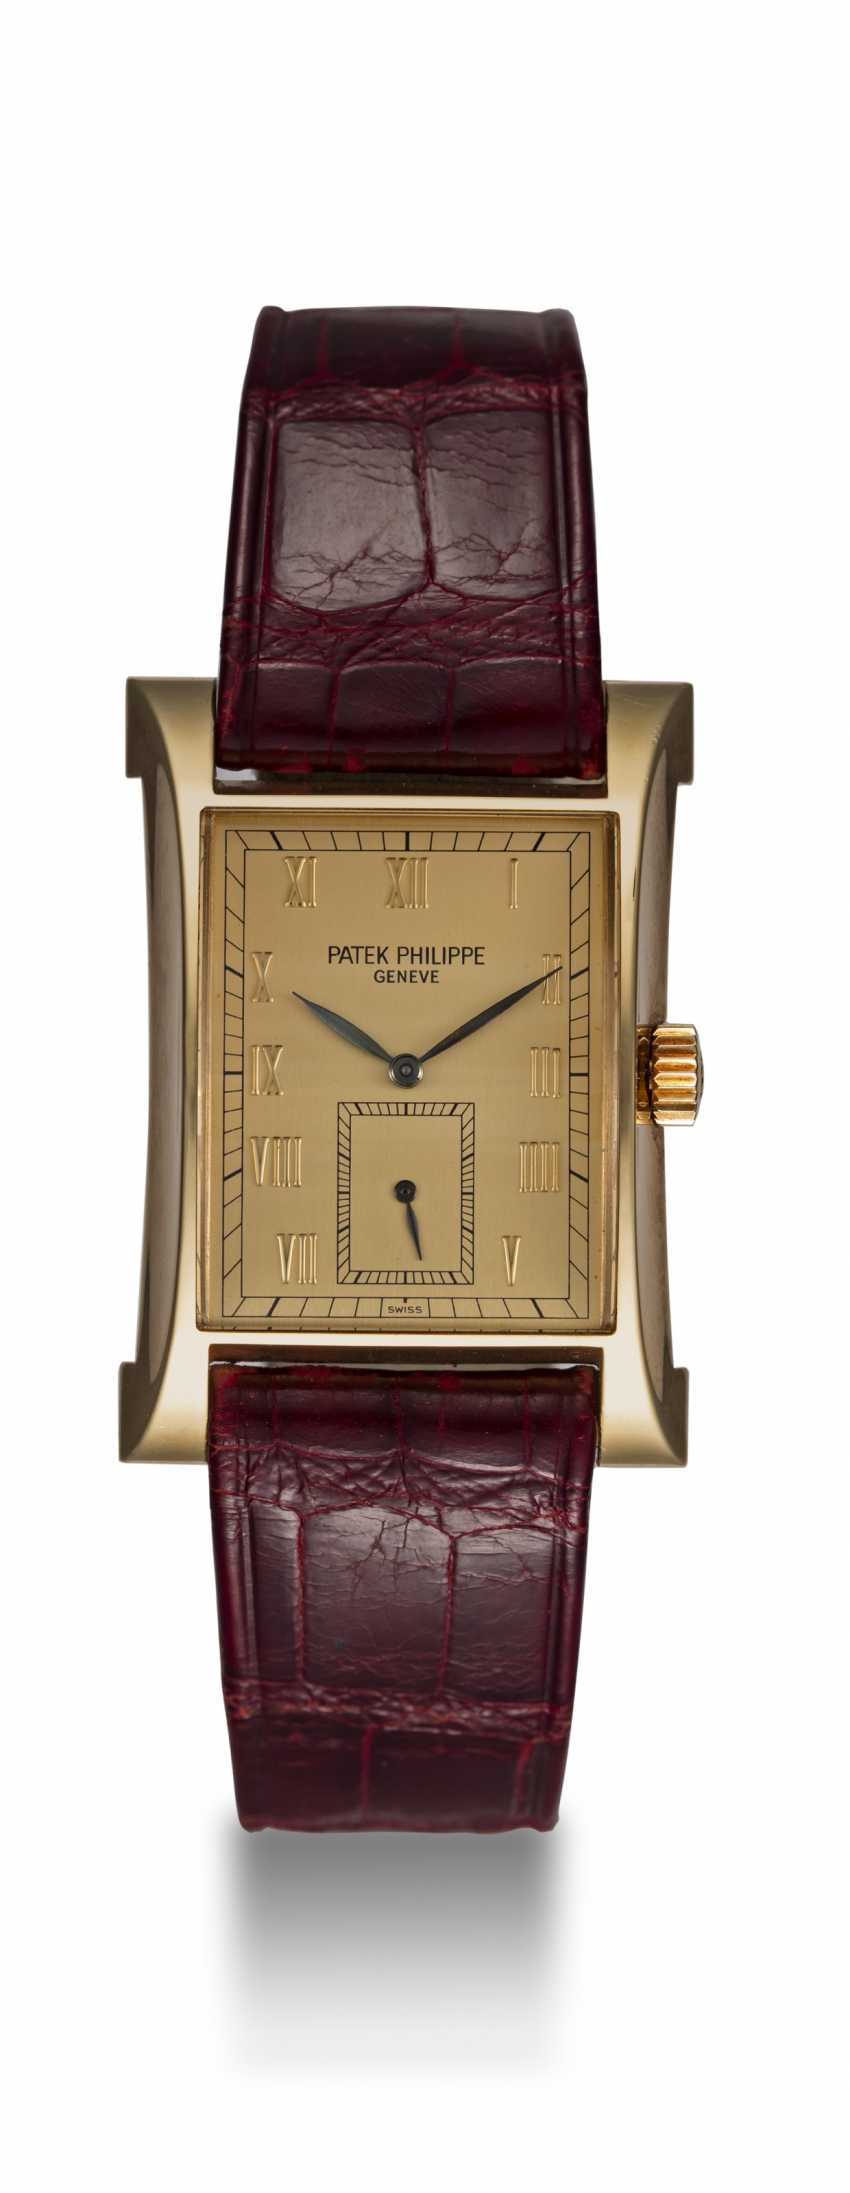 PATEK PHILIPPE, REF. 5500 PAGODA, A LIMITED EDITION GOLD WRISTWATCH - photo 3